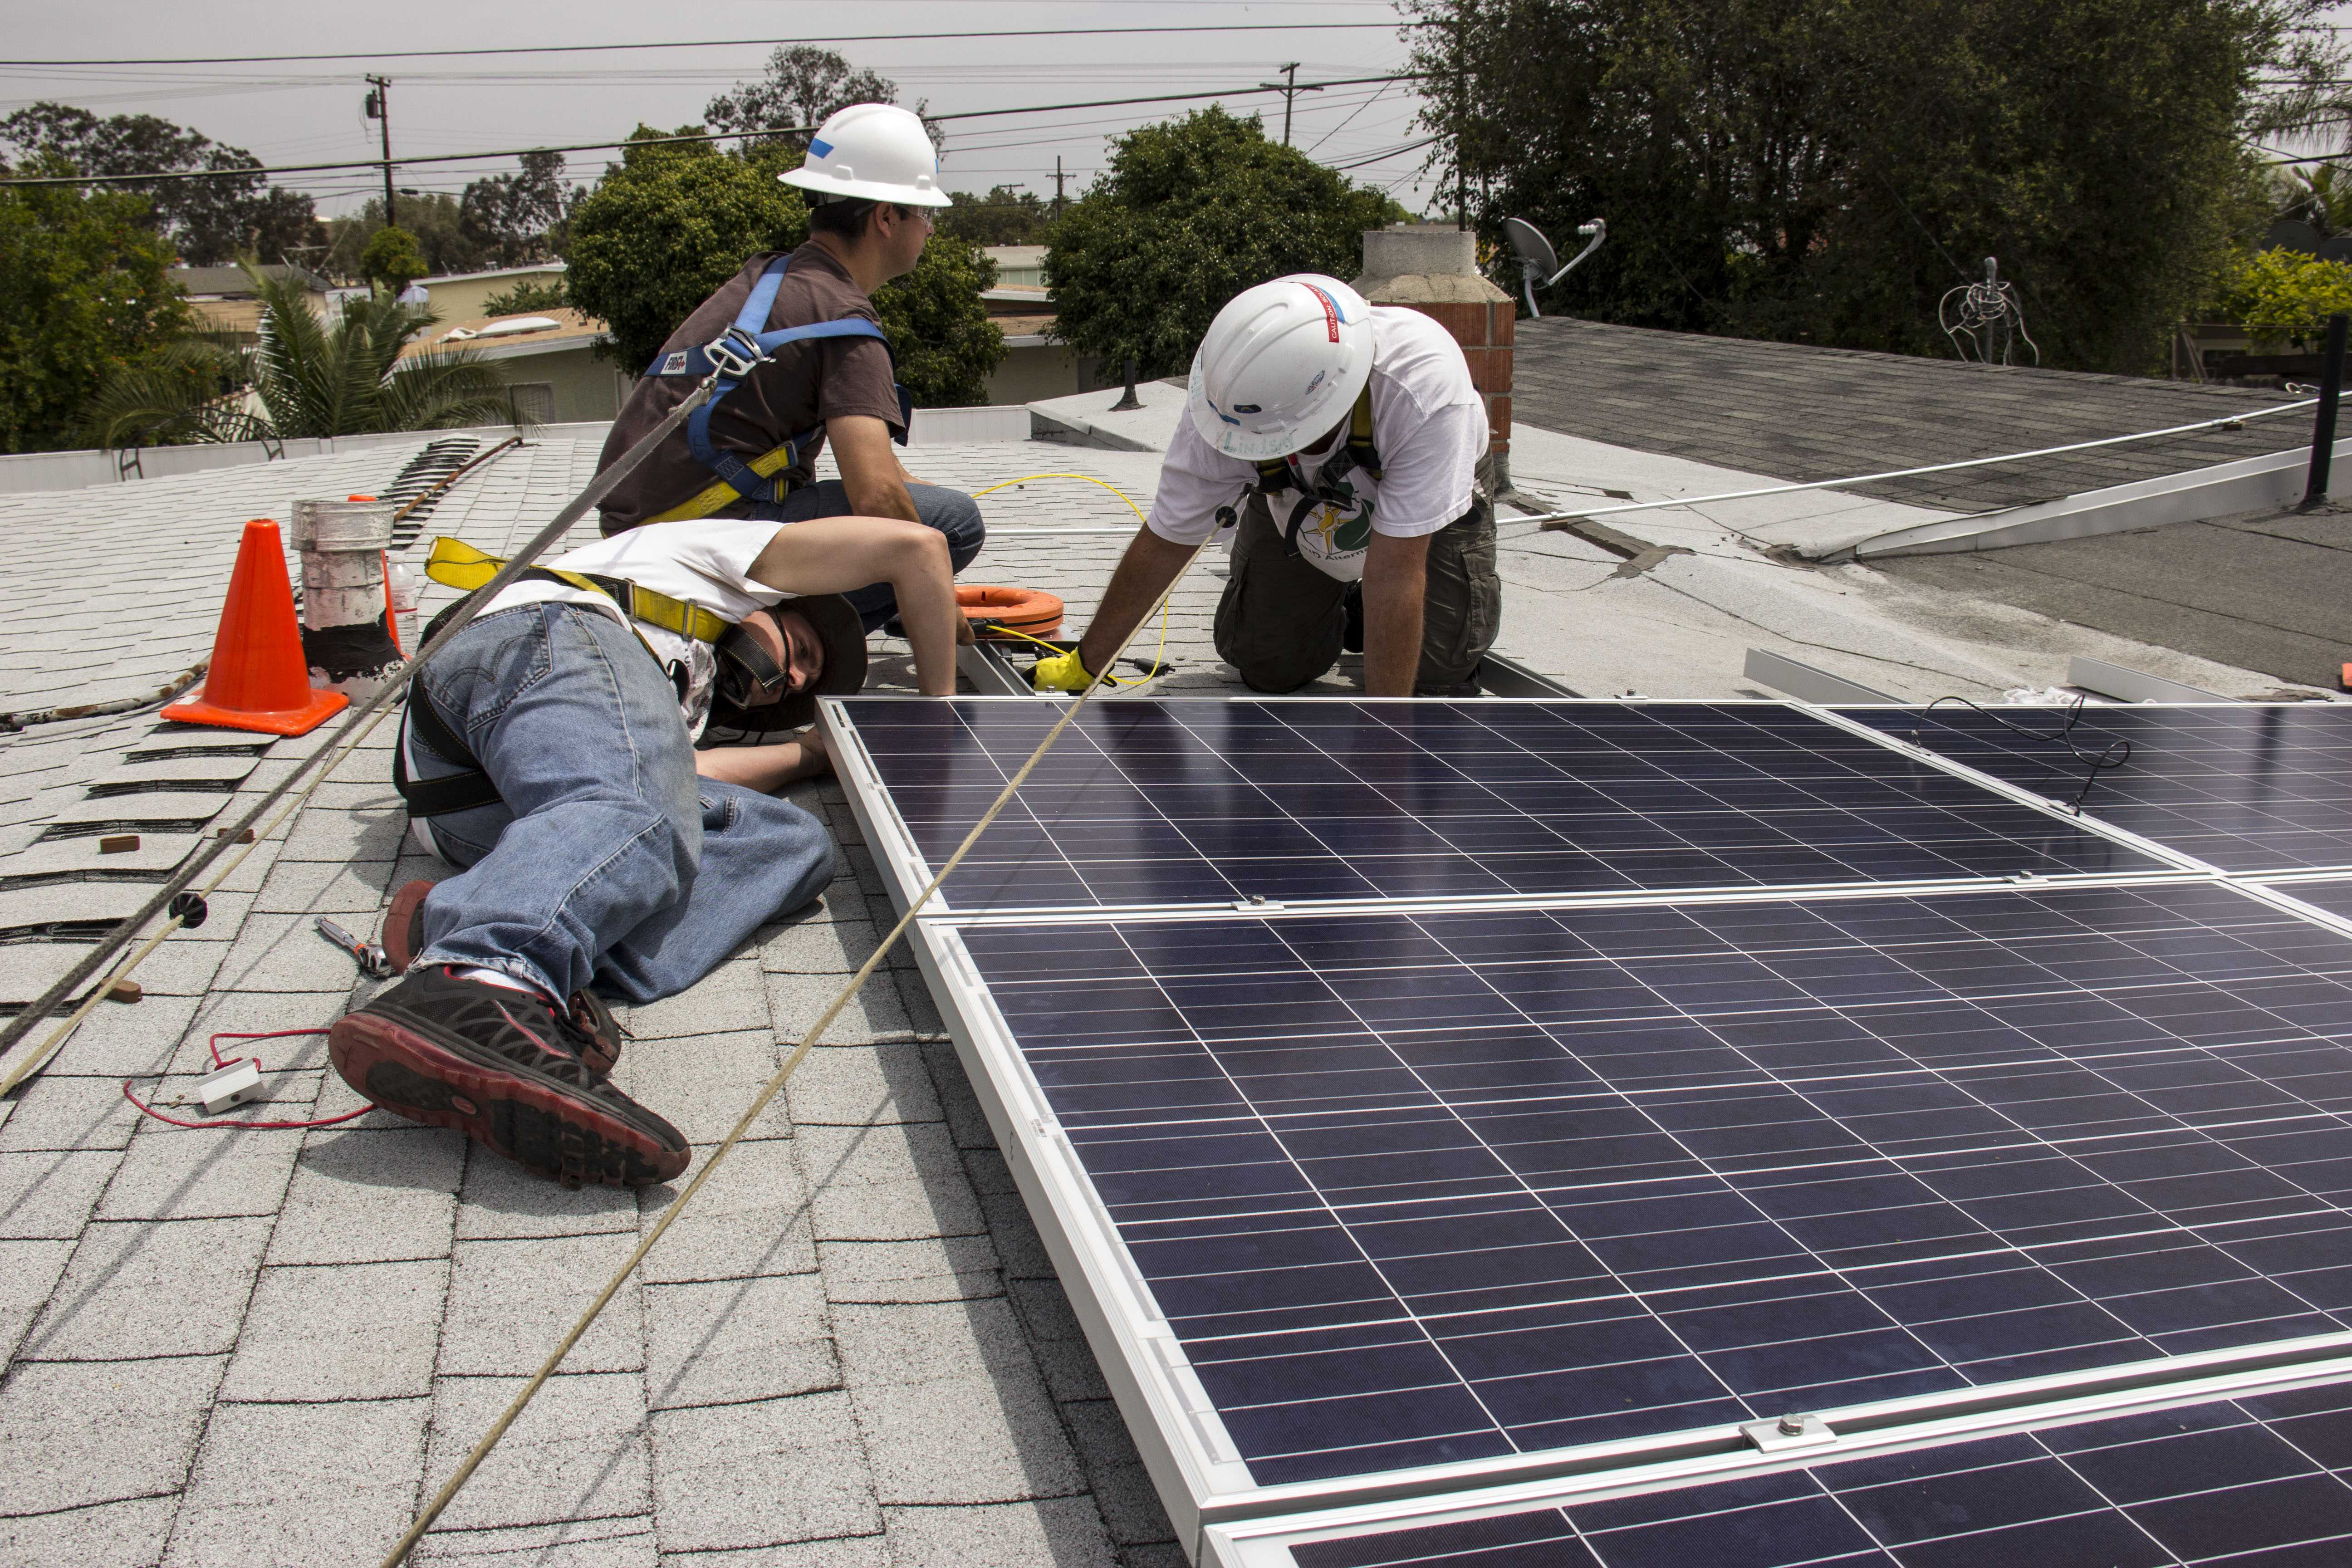 A team of City College students worked with GRID Alternatives to install a solar energy system. Photo credit: Celia Jimenez